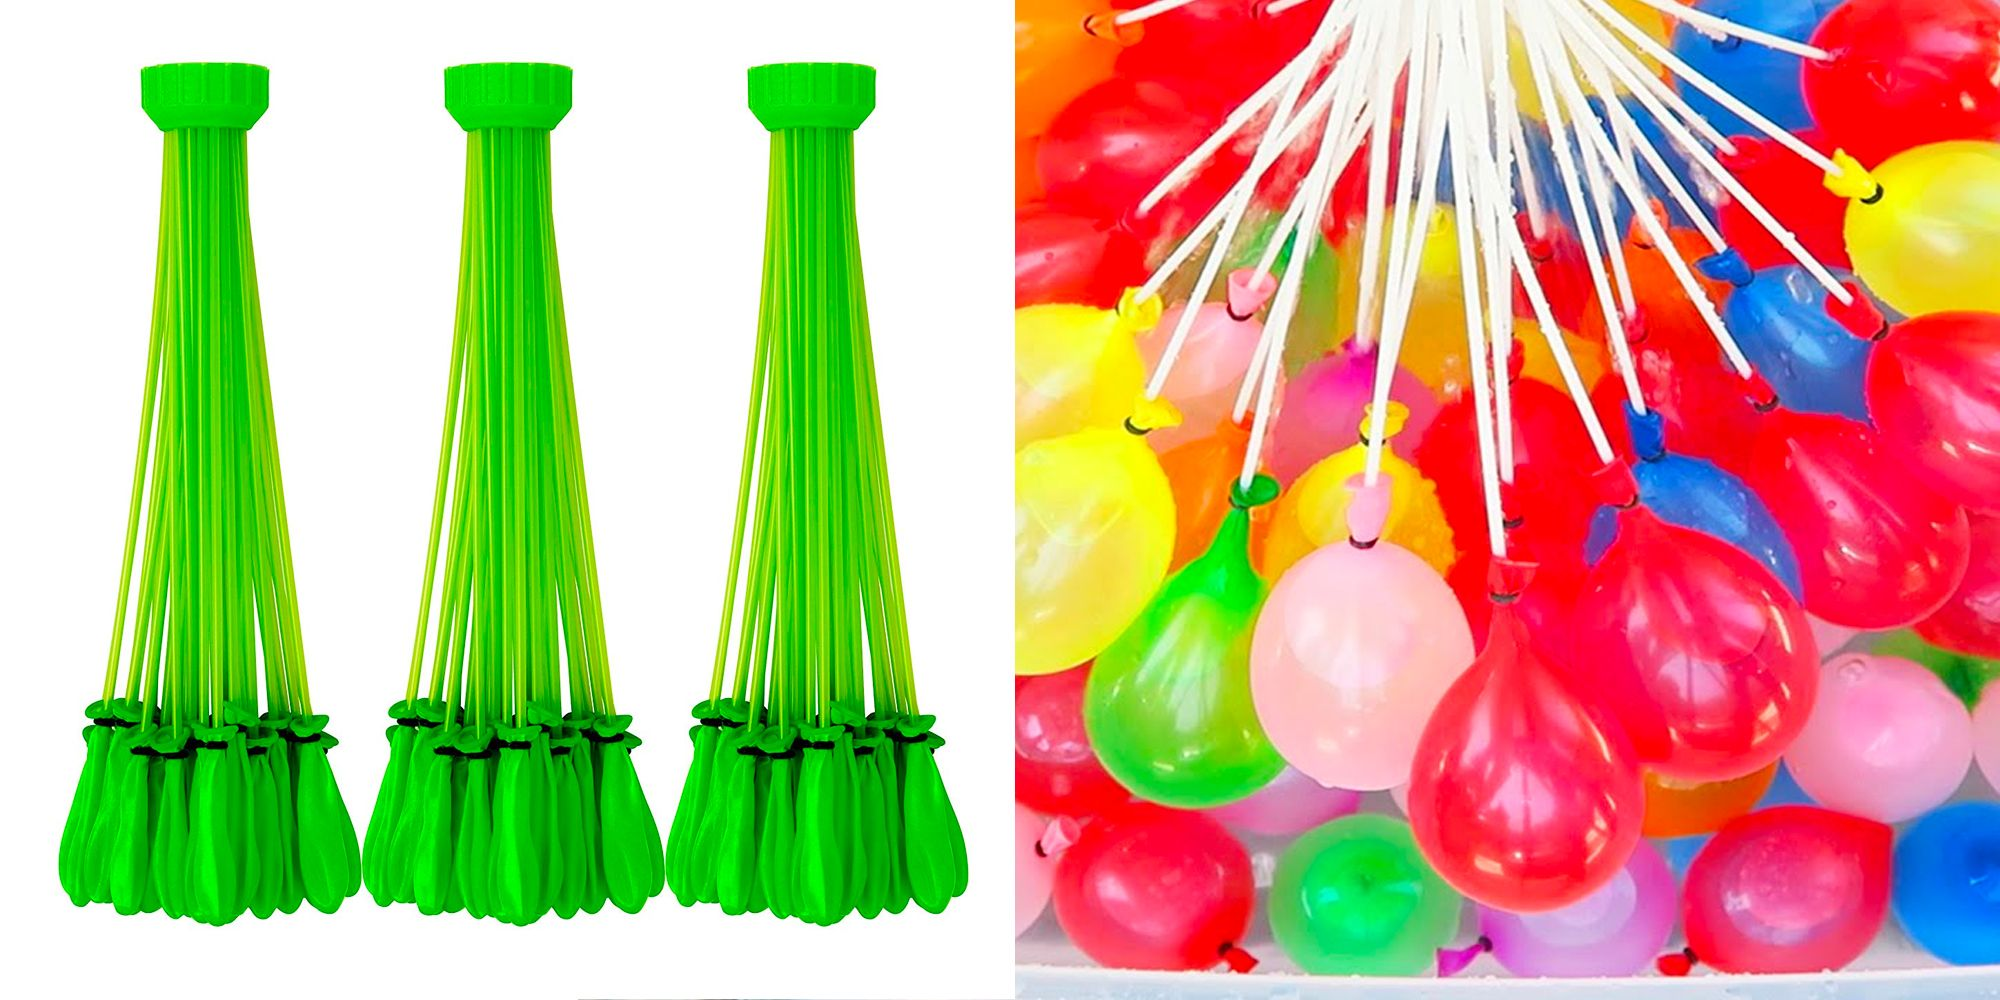 30 Best Pool Party Decorations for 2019 - Pool Party Ideas